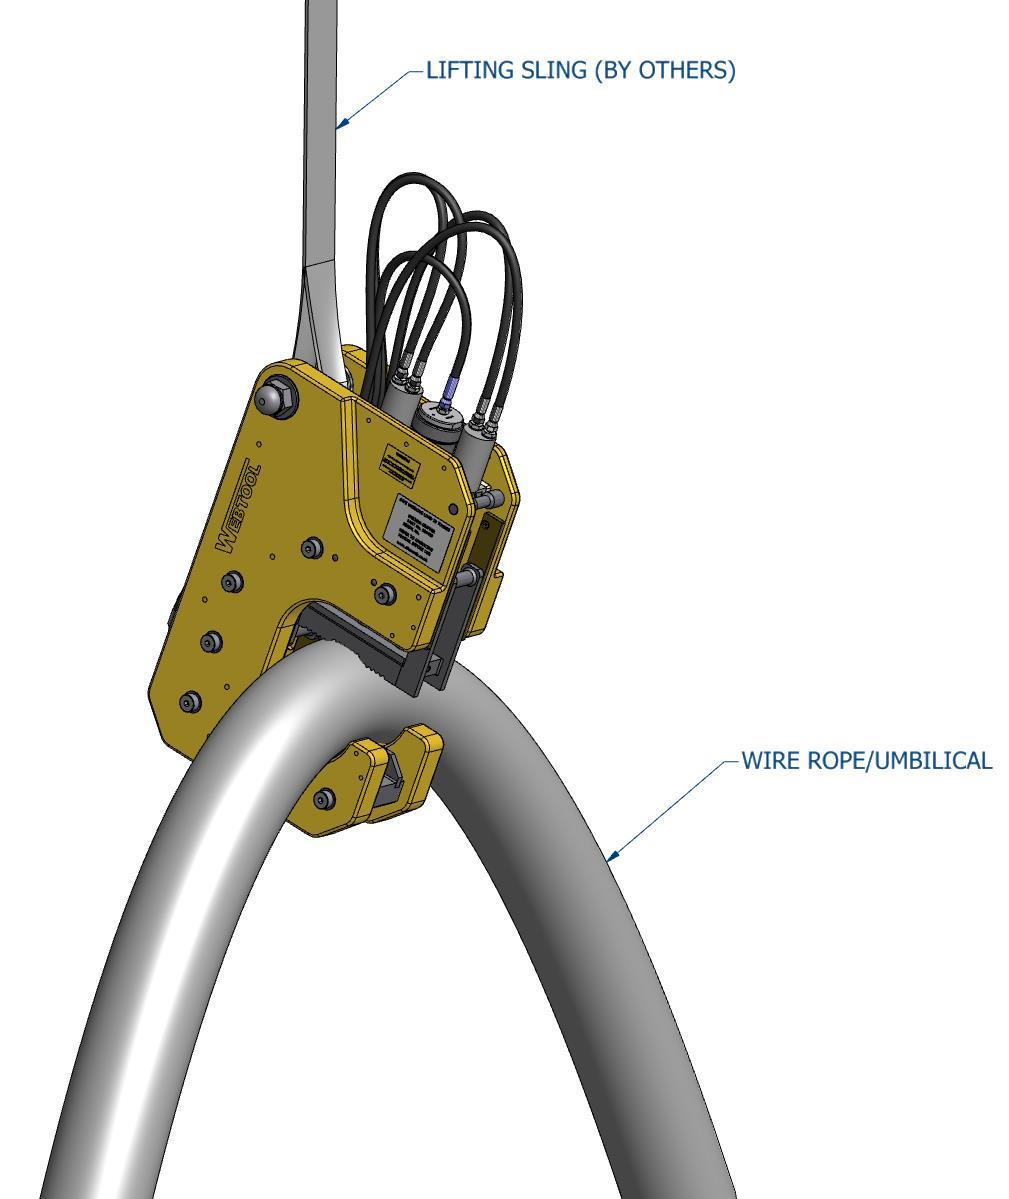 The optimum lifting method is as shown below in figure 2a, with the lift point located centrally along the length of the wire rope/umbilical.